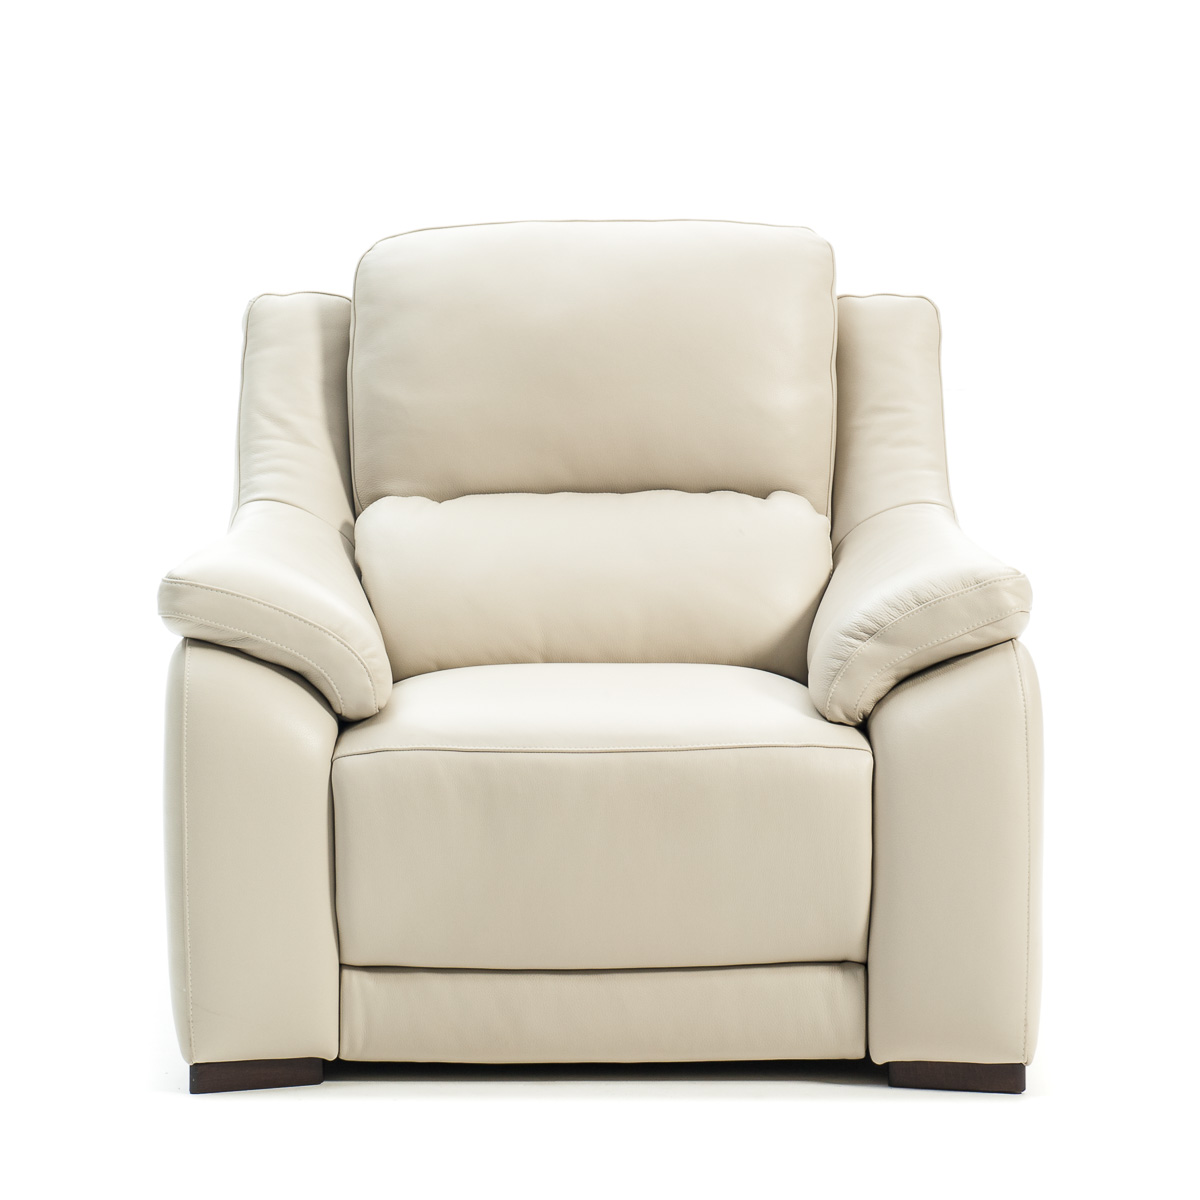 Livorno Electric Recliner